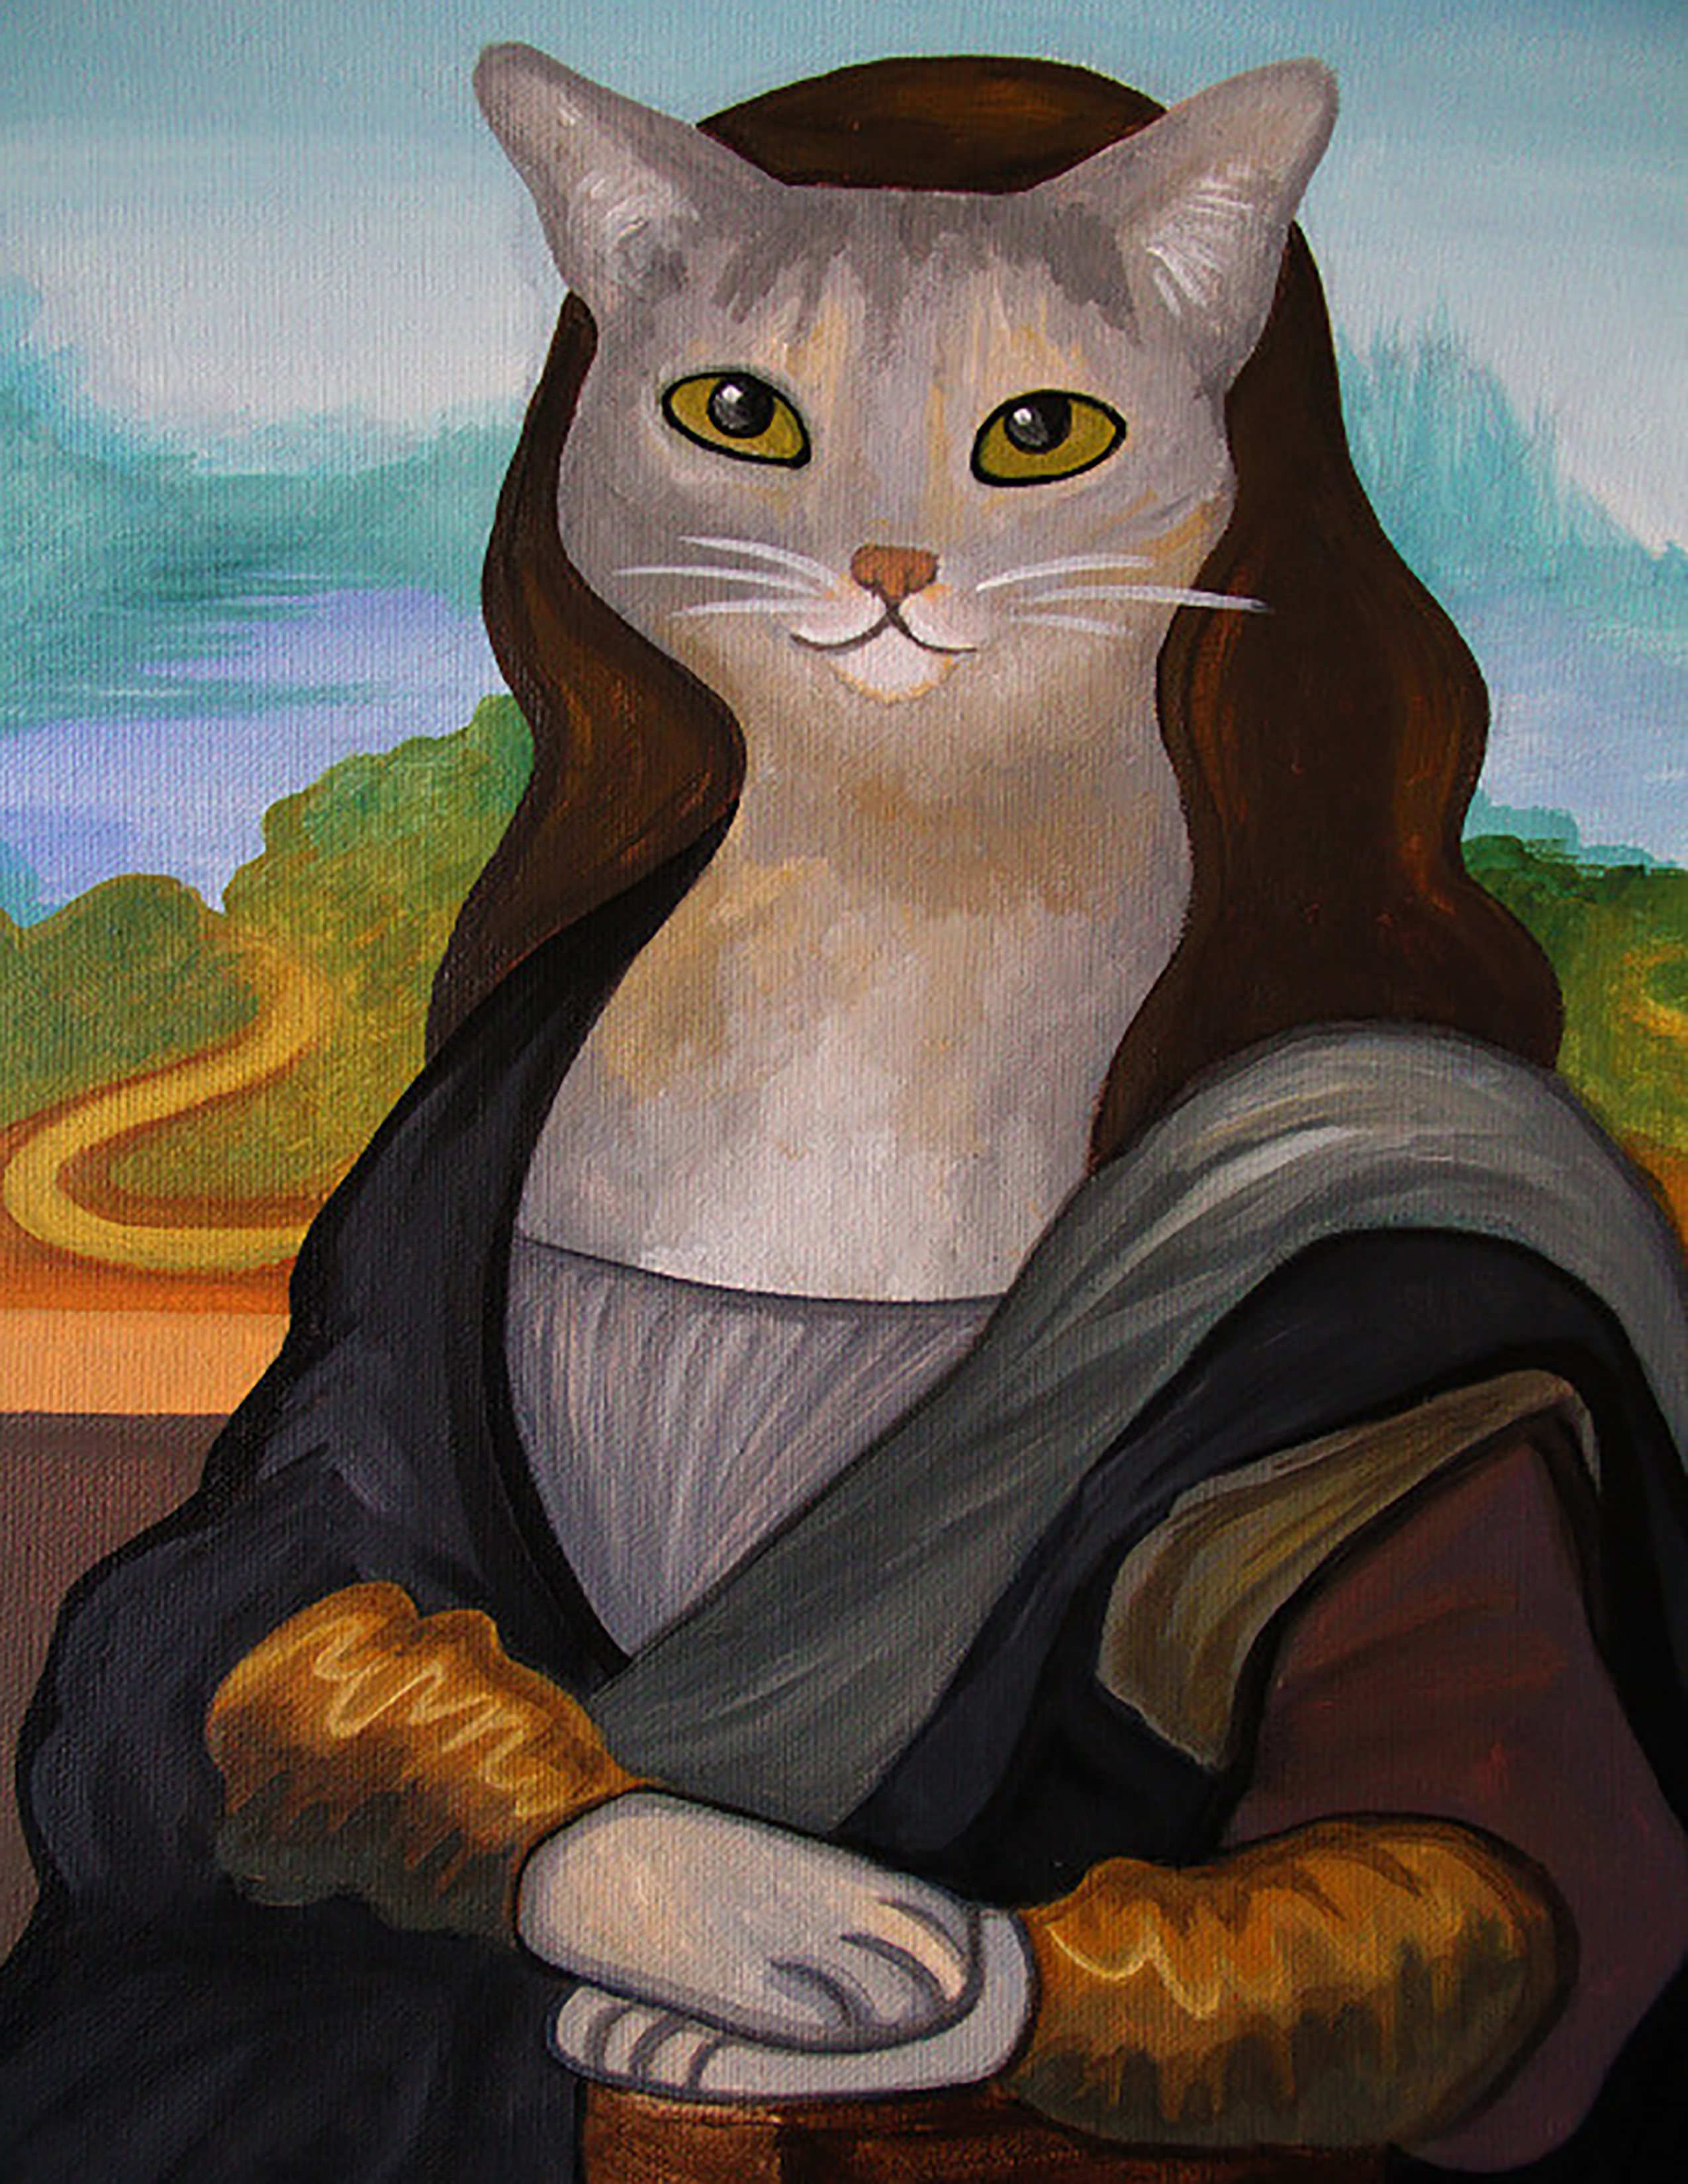 The Meowna Lisa Art Print